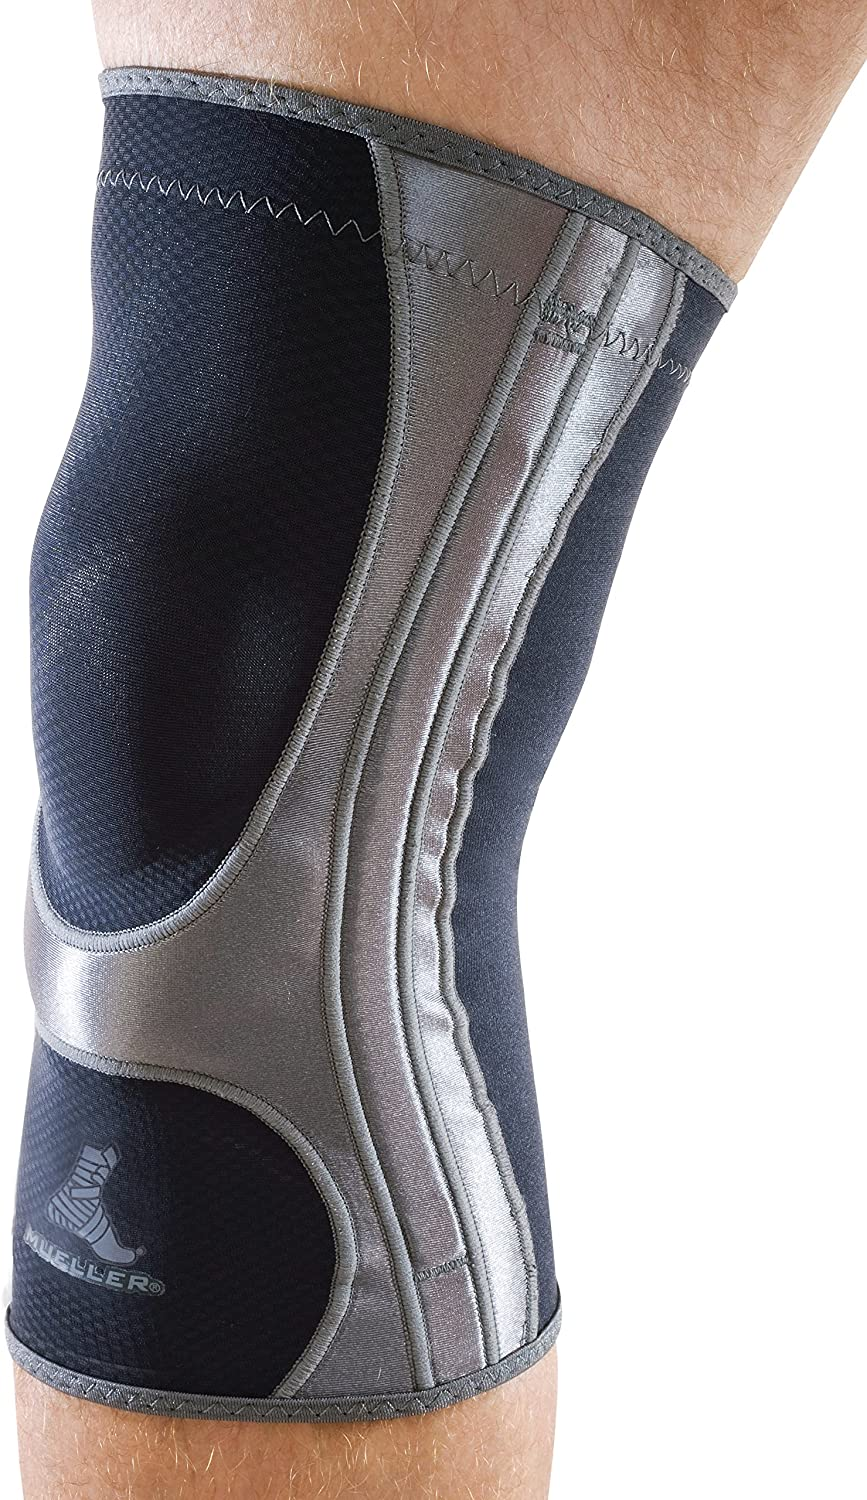 Mueller Sports Medicine Hg80 Knee Support, Black, Medium (59912): Health & Personal Care